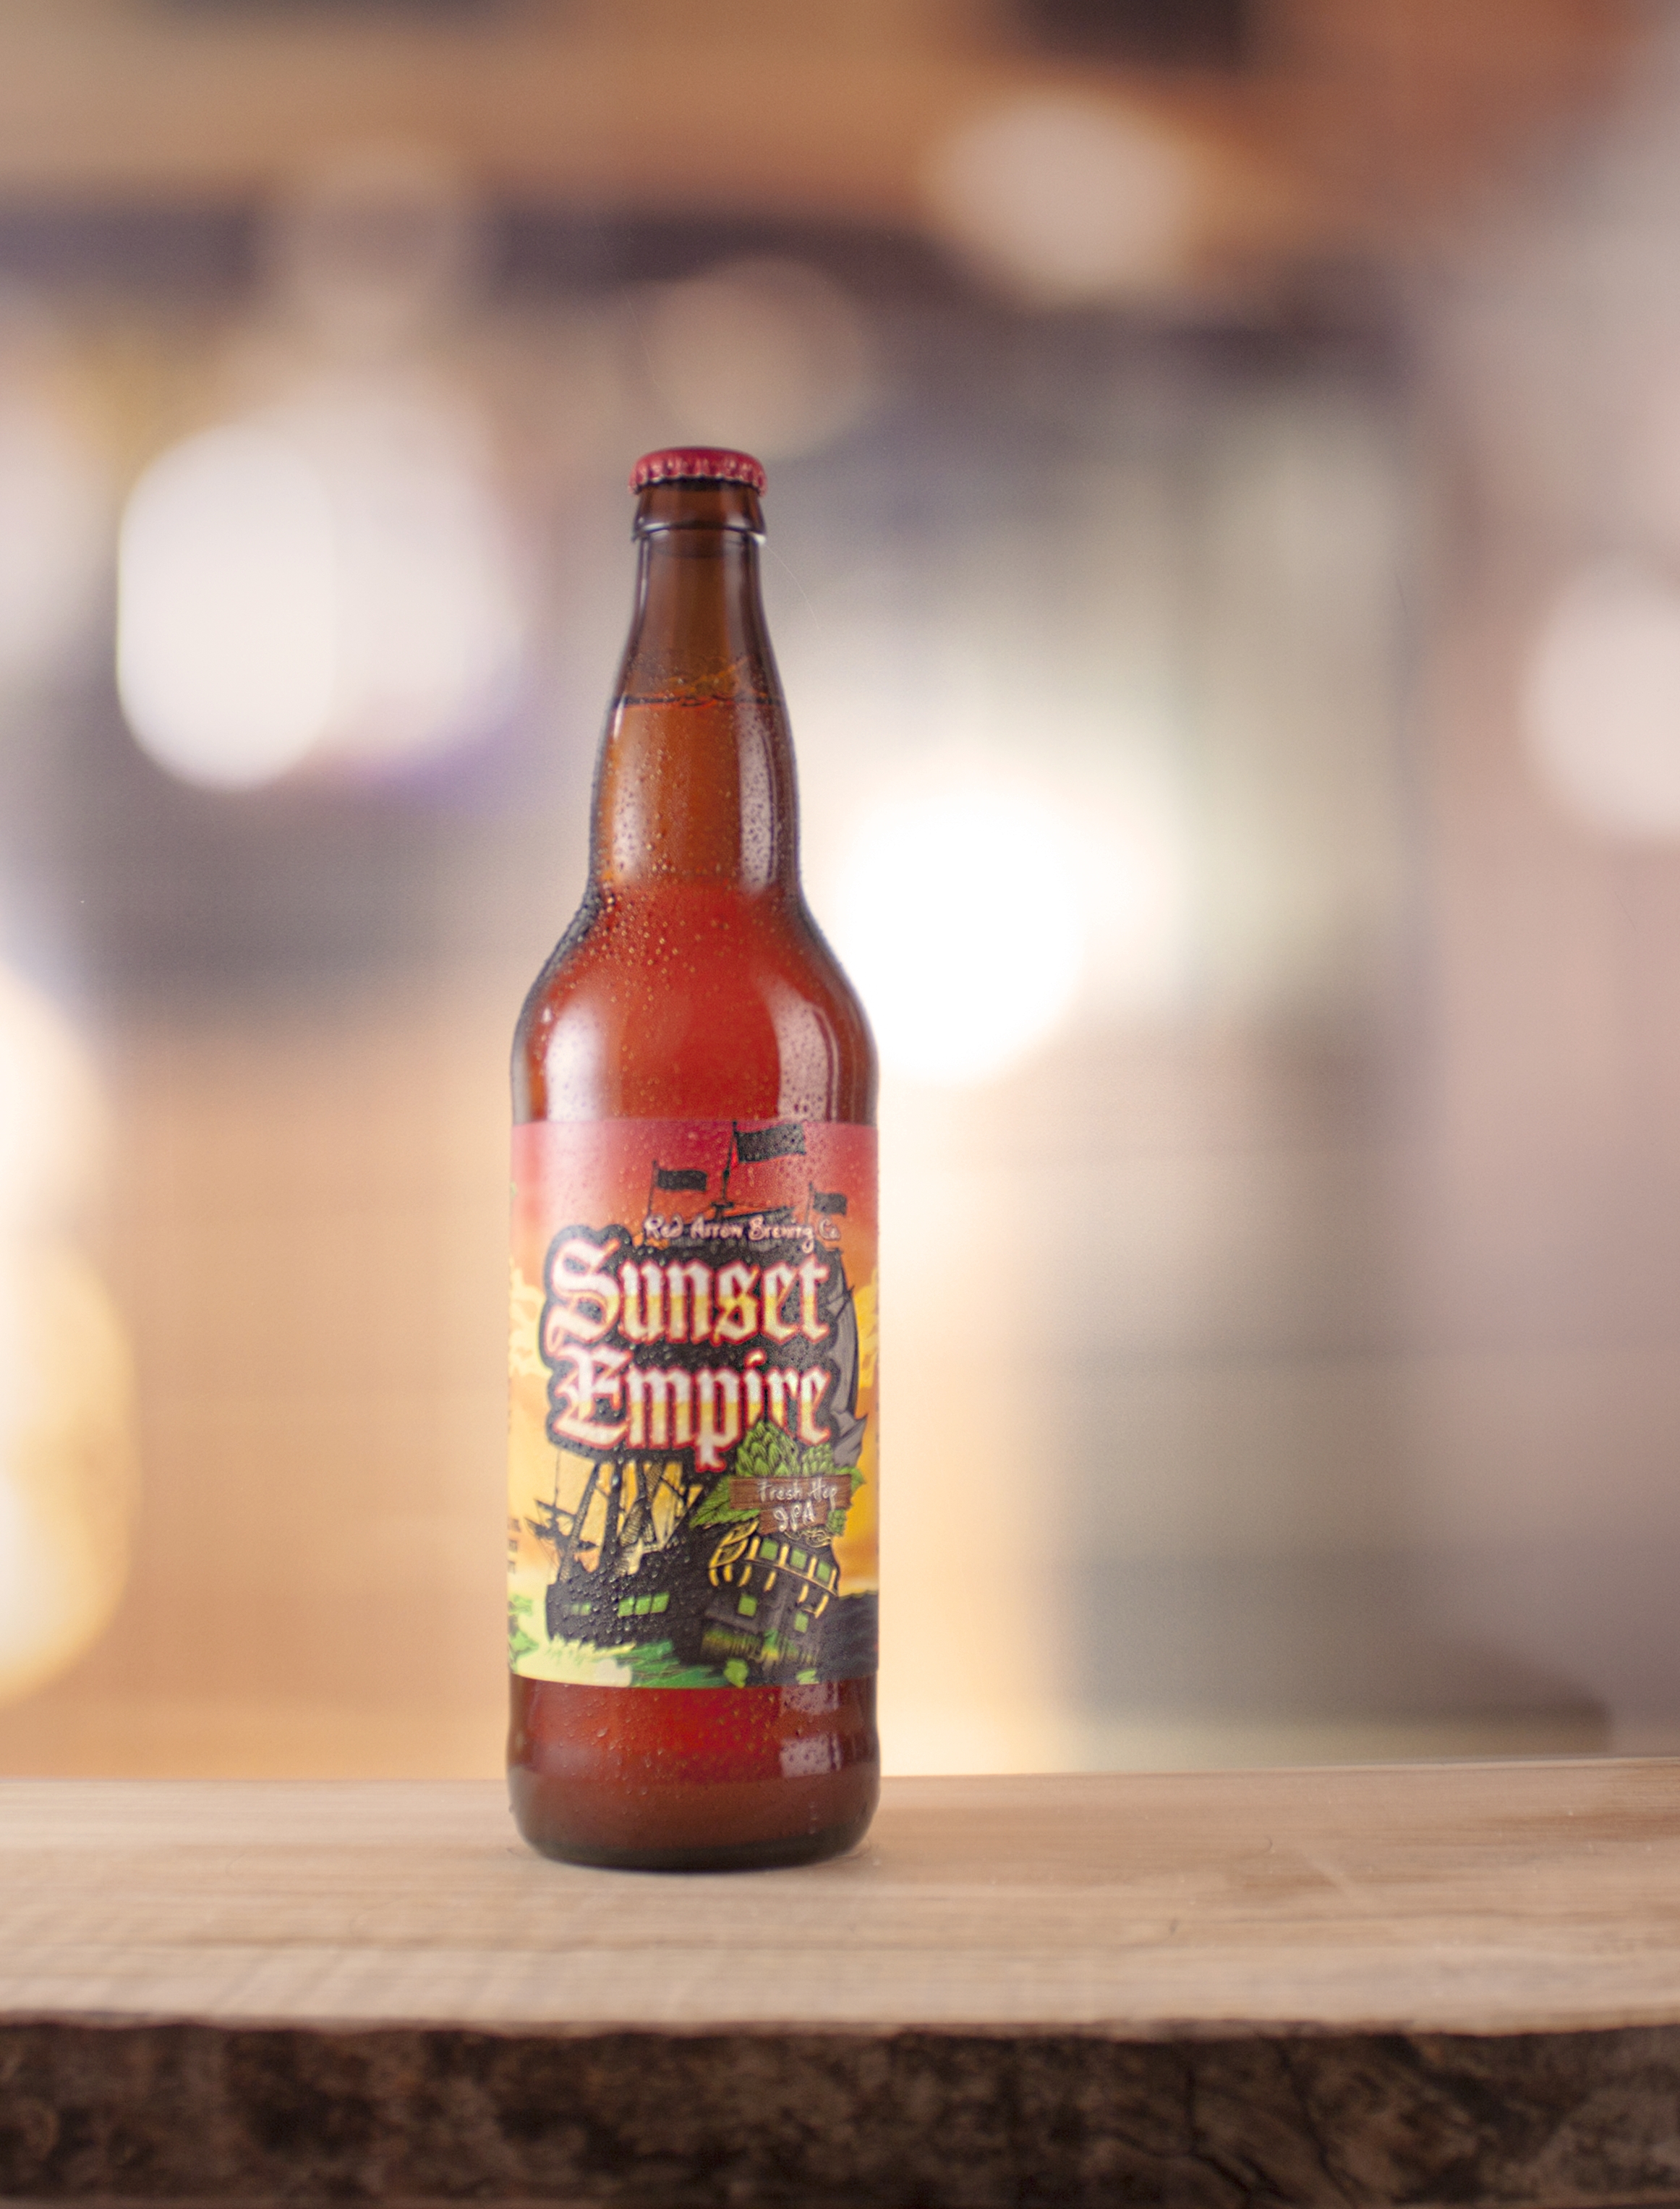 Sunset Empire Fresh Hop IPA | 650ml | ABV: 6.0%